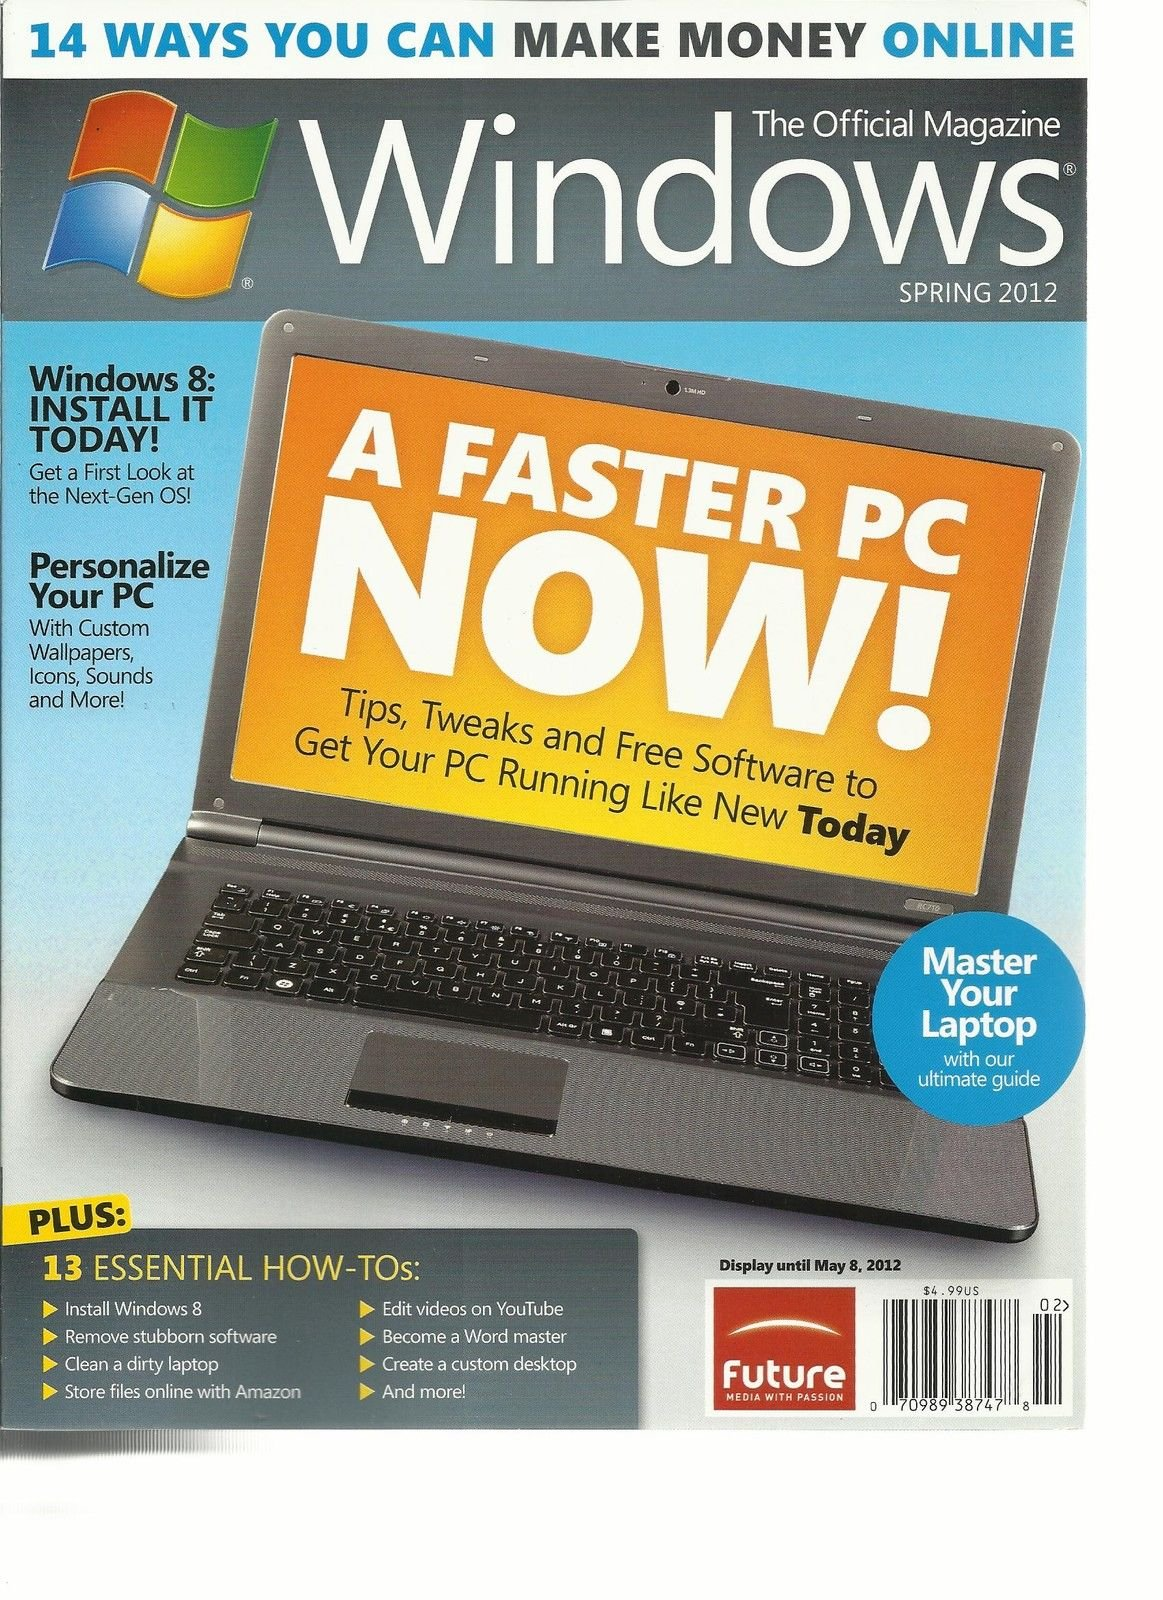 WINDOWS, SPRING, 2012 THE OFFICIAL MAGAZINE (14 WAYS YOU CAN MAKE MONEY ONLINE